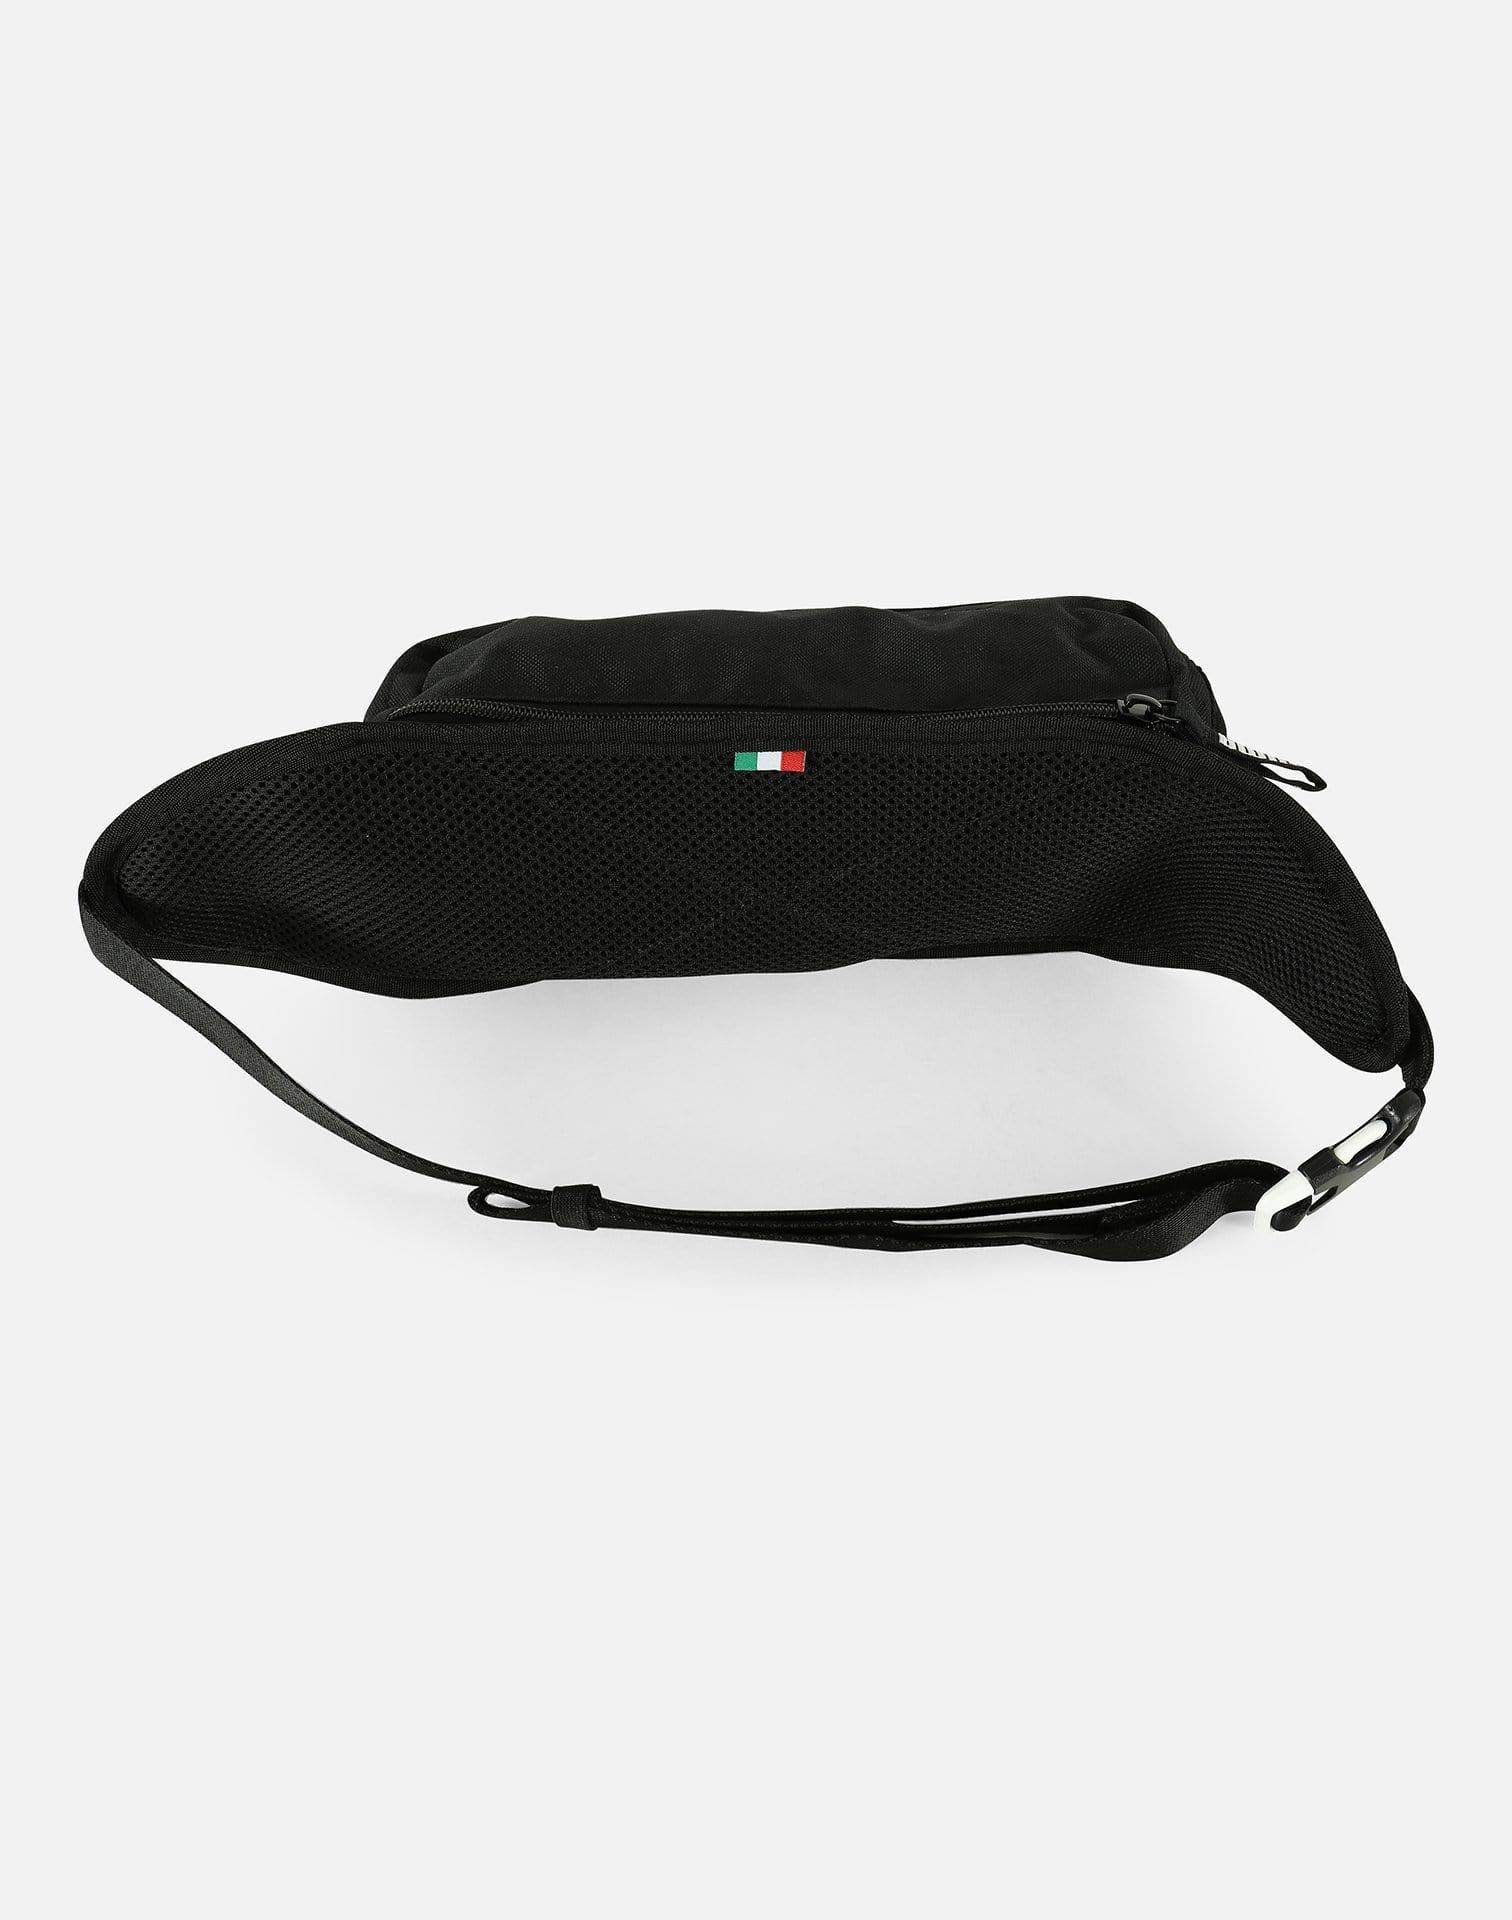 PUMA SF Fanwear Waist Bag